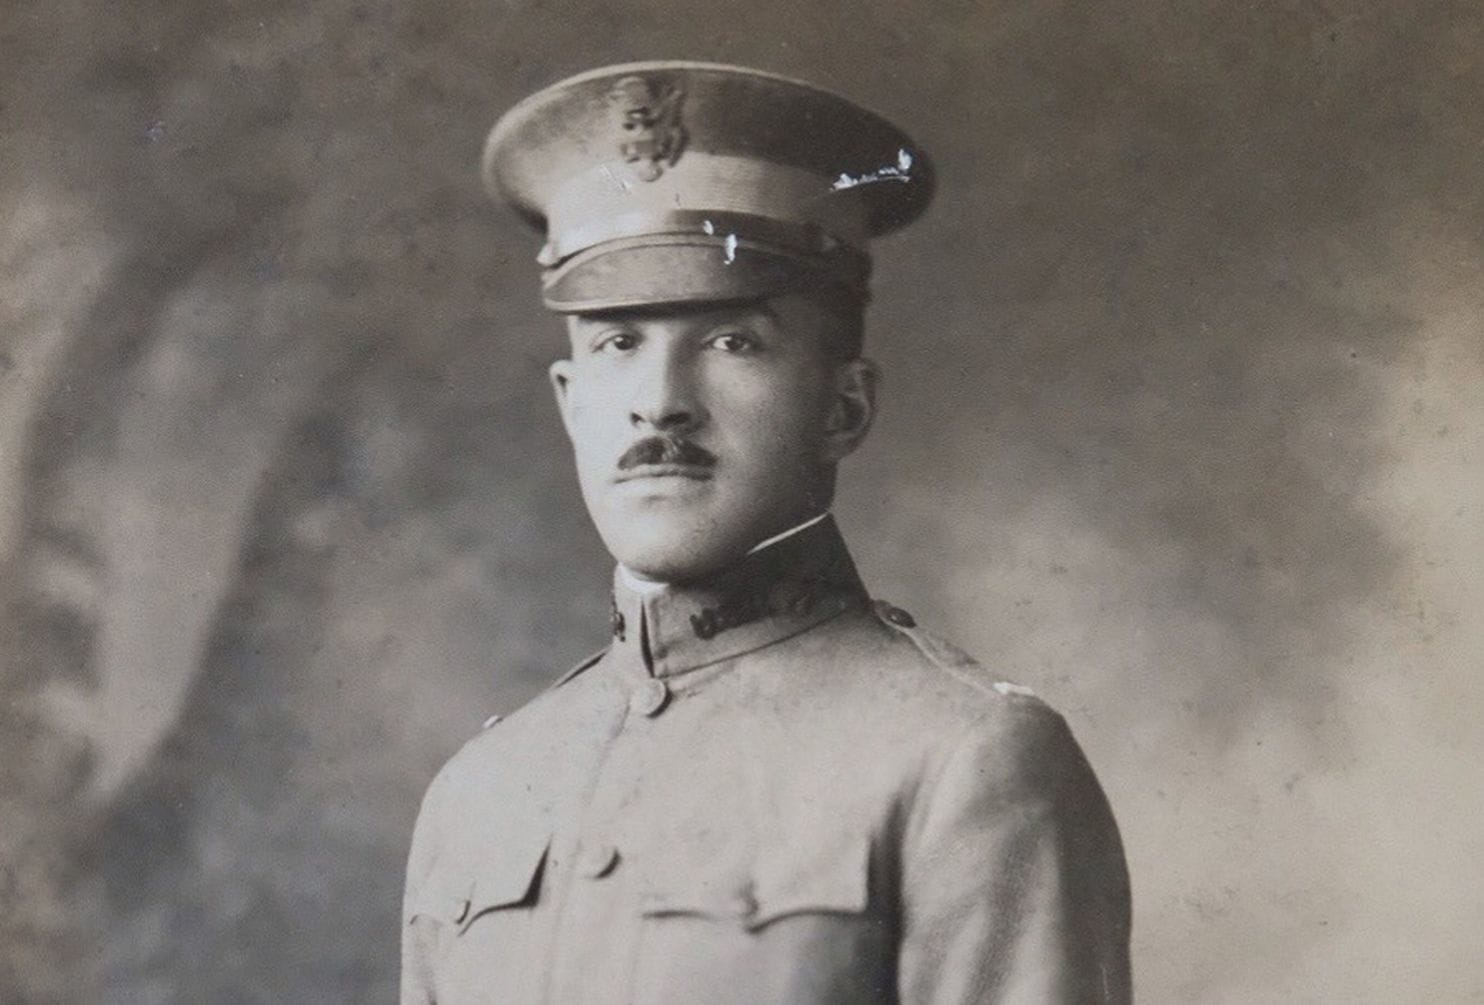 When World War I raged, a D.C. professor fought for black officers' participation